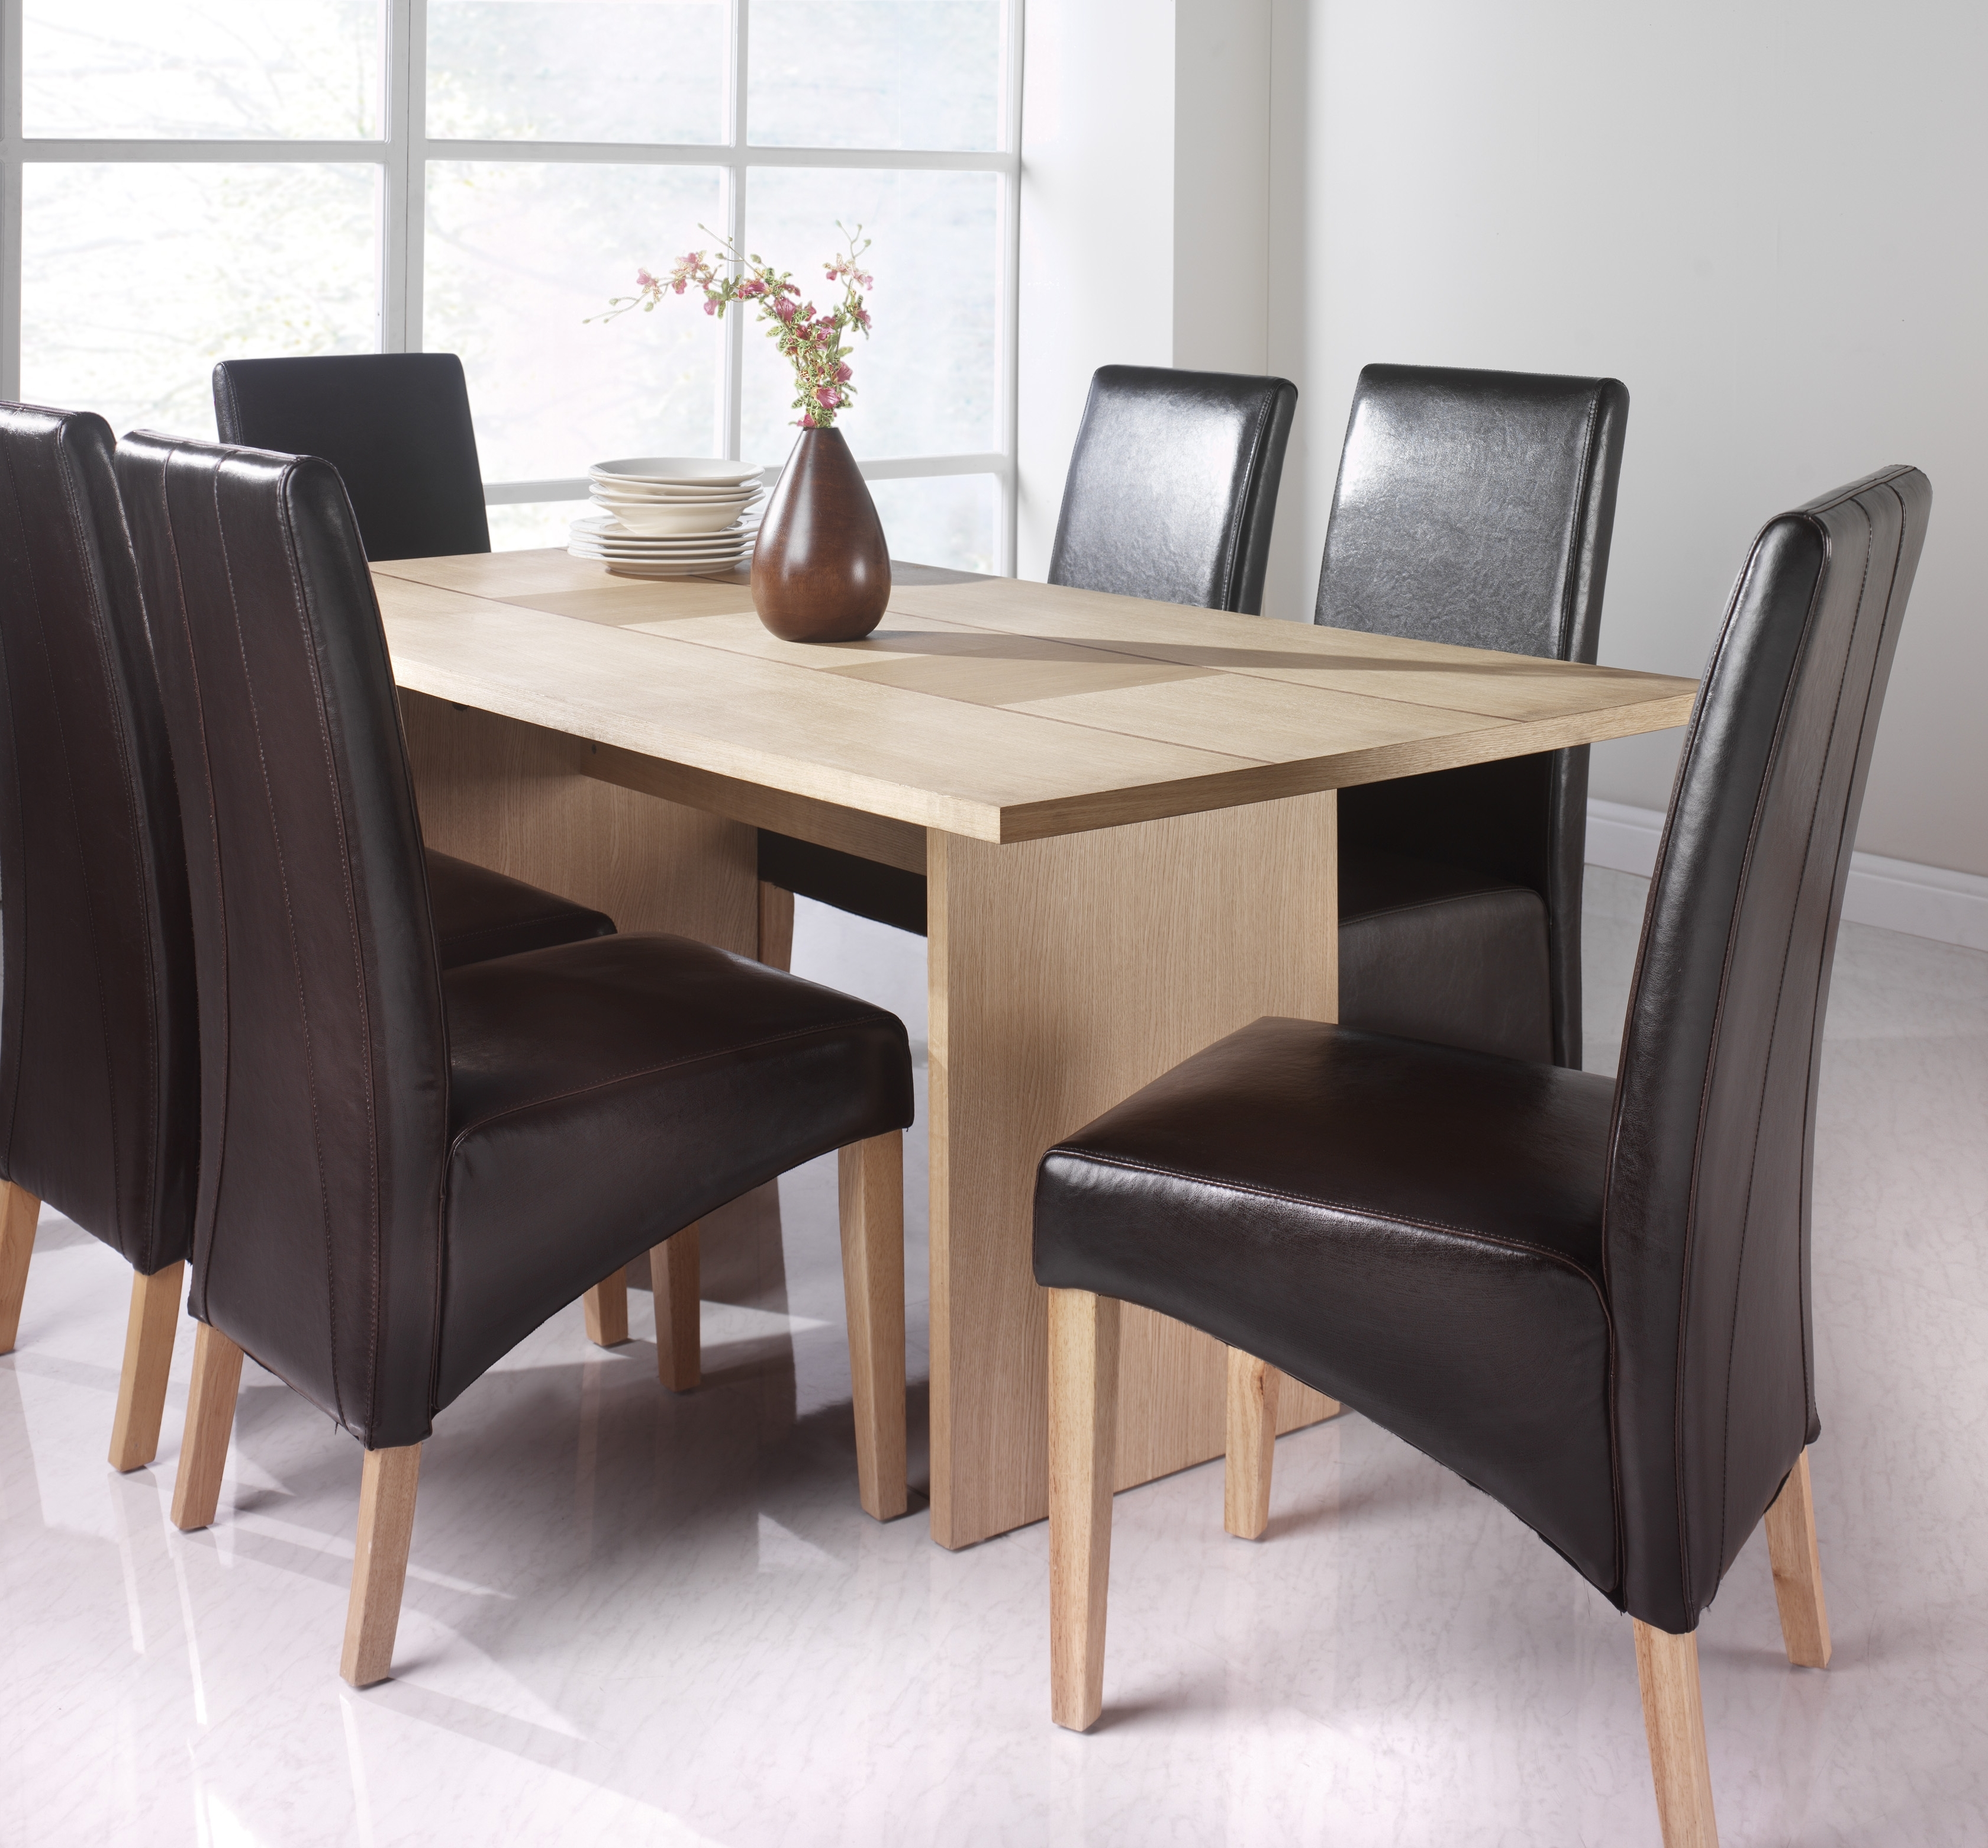 Dining Tables At Aintree Liquidation Centre With Regard To Most Up To Date Oak Dining Suites (View 15 of 25)